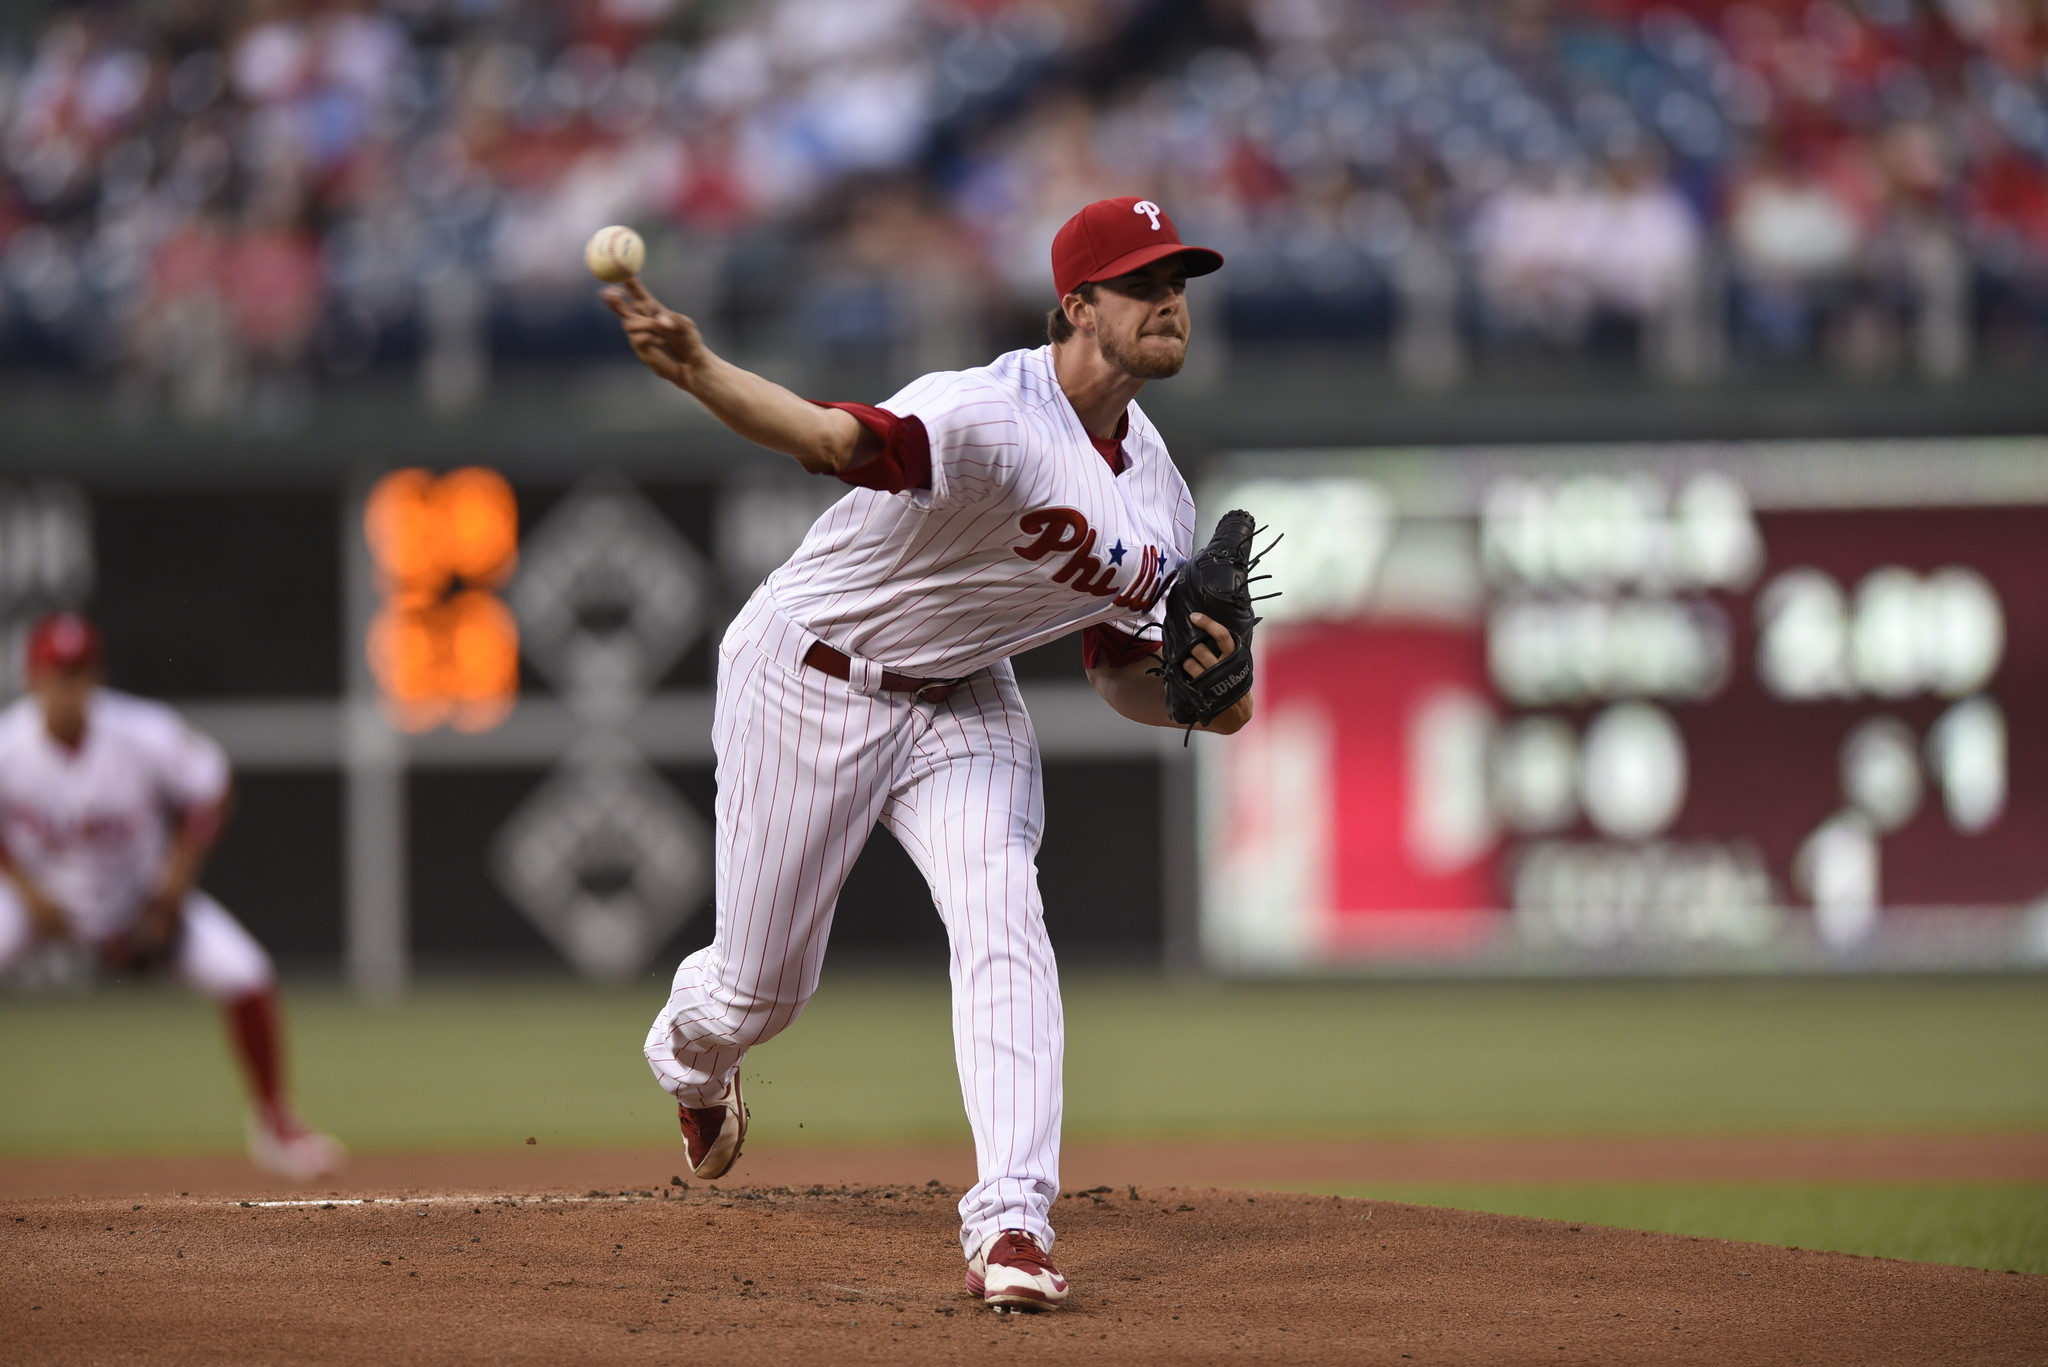 Mc-phillies-look-to-keep-anibal-sanchez-winless-in-may-avoid-sweep-20160525